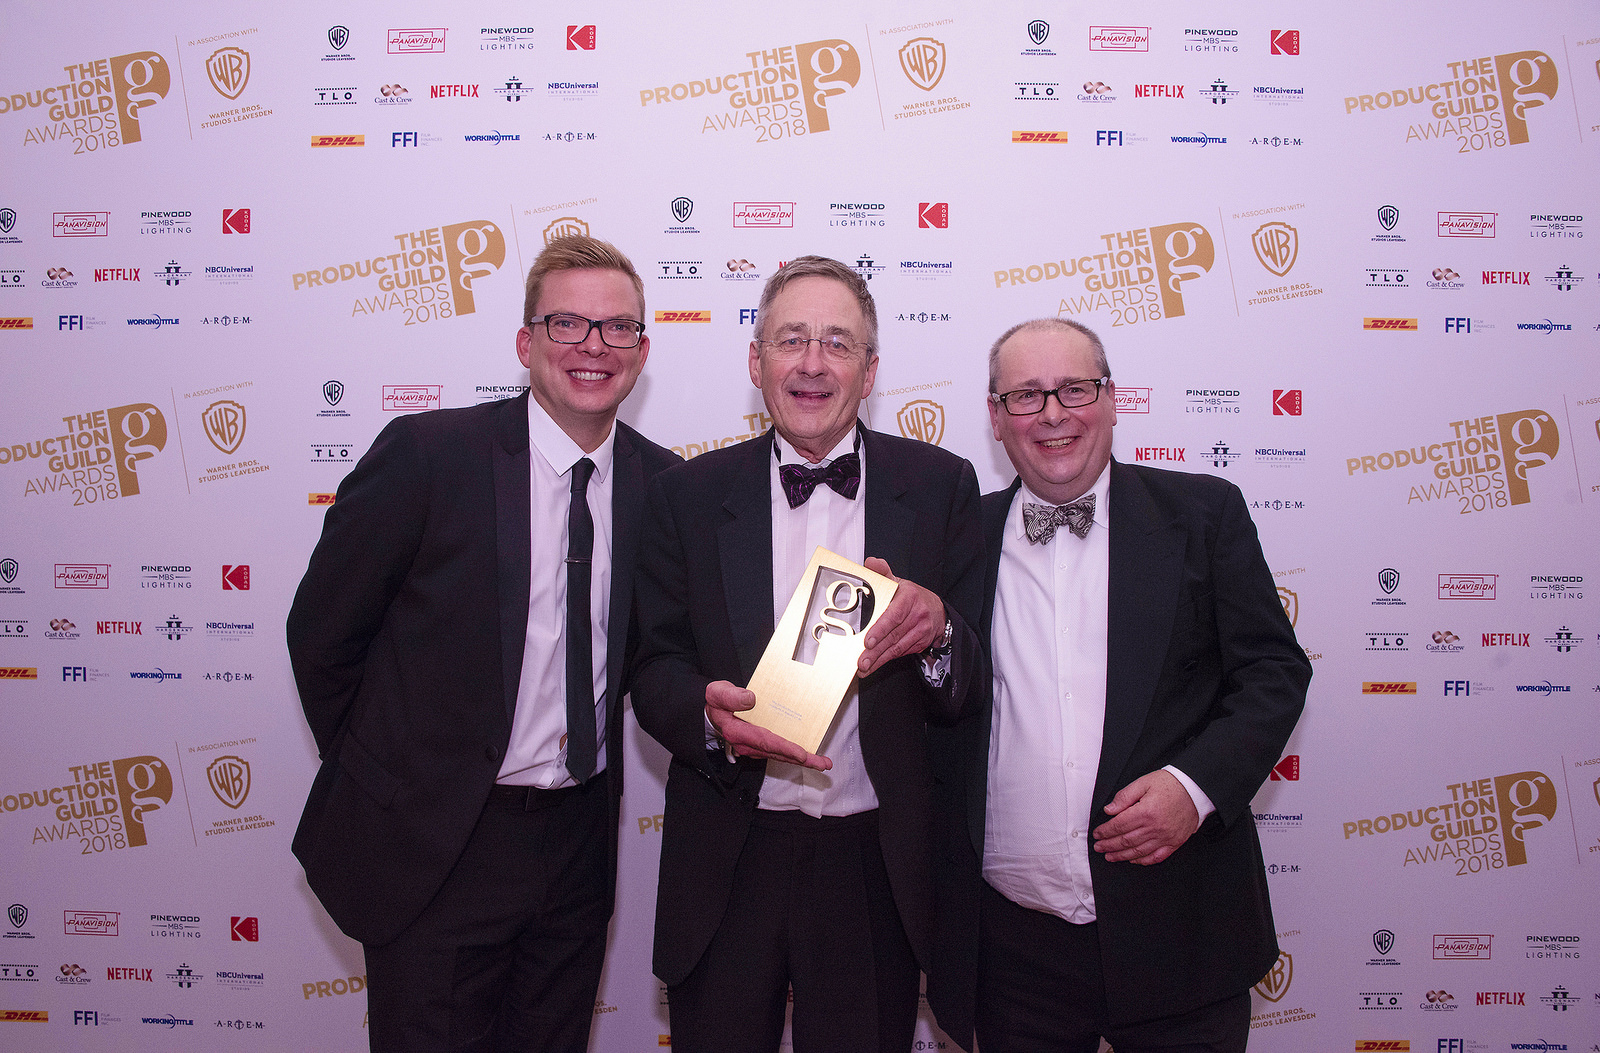 Gareth Tandy standing in a suit with two other men, holding his award